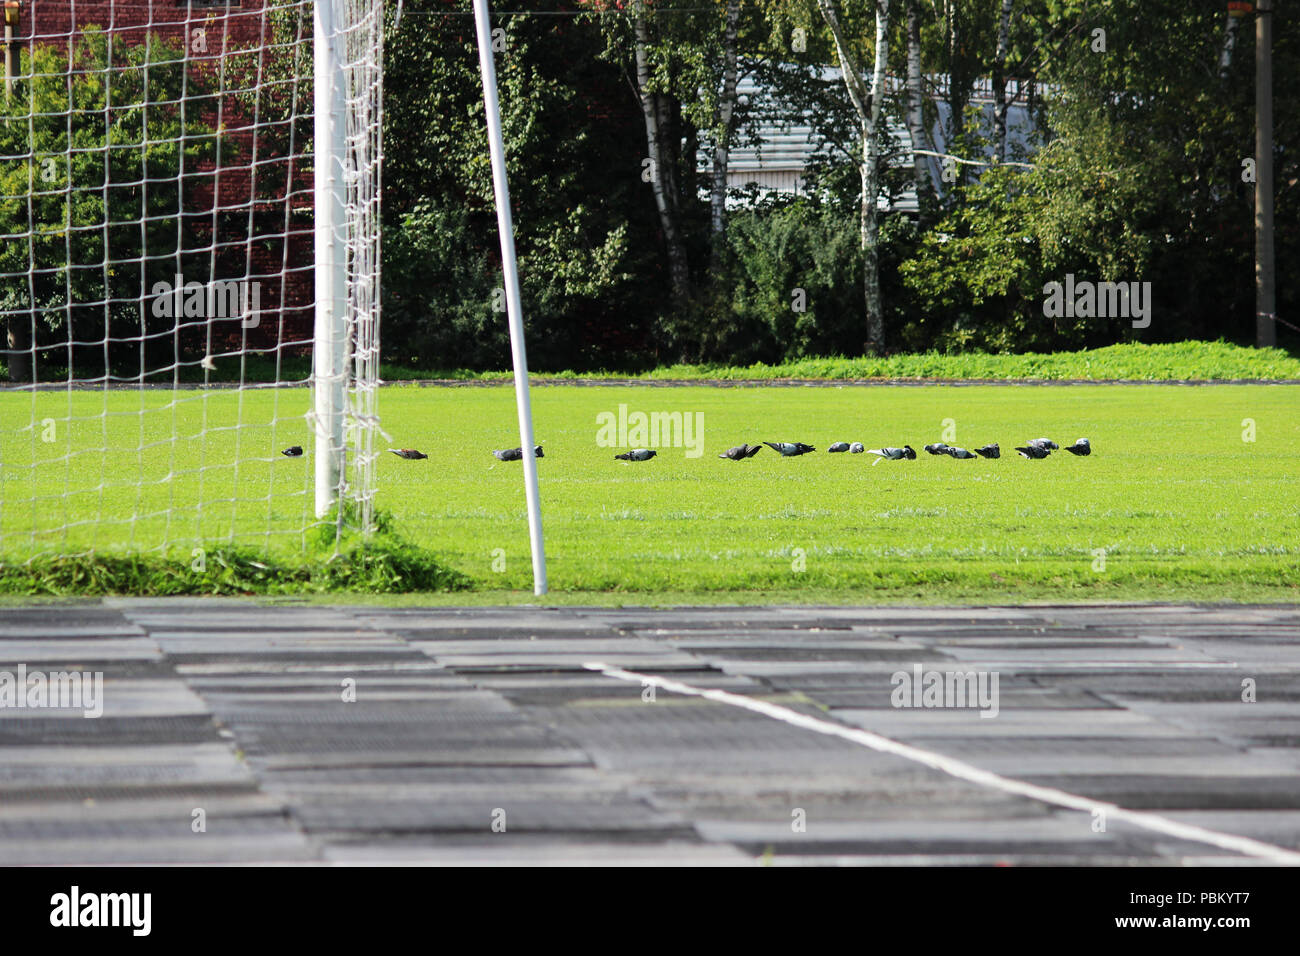 stadium: a treadmill with rubber plates and a football field with a goalkeeper's goal and a flock of pigeons that walk on real green grass. - Stock Image